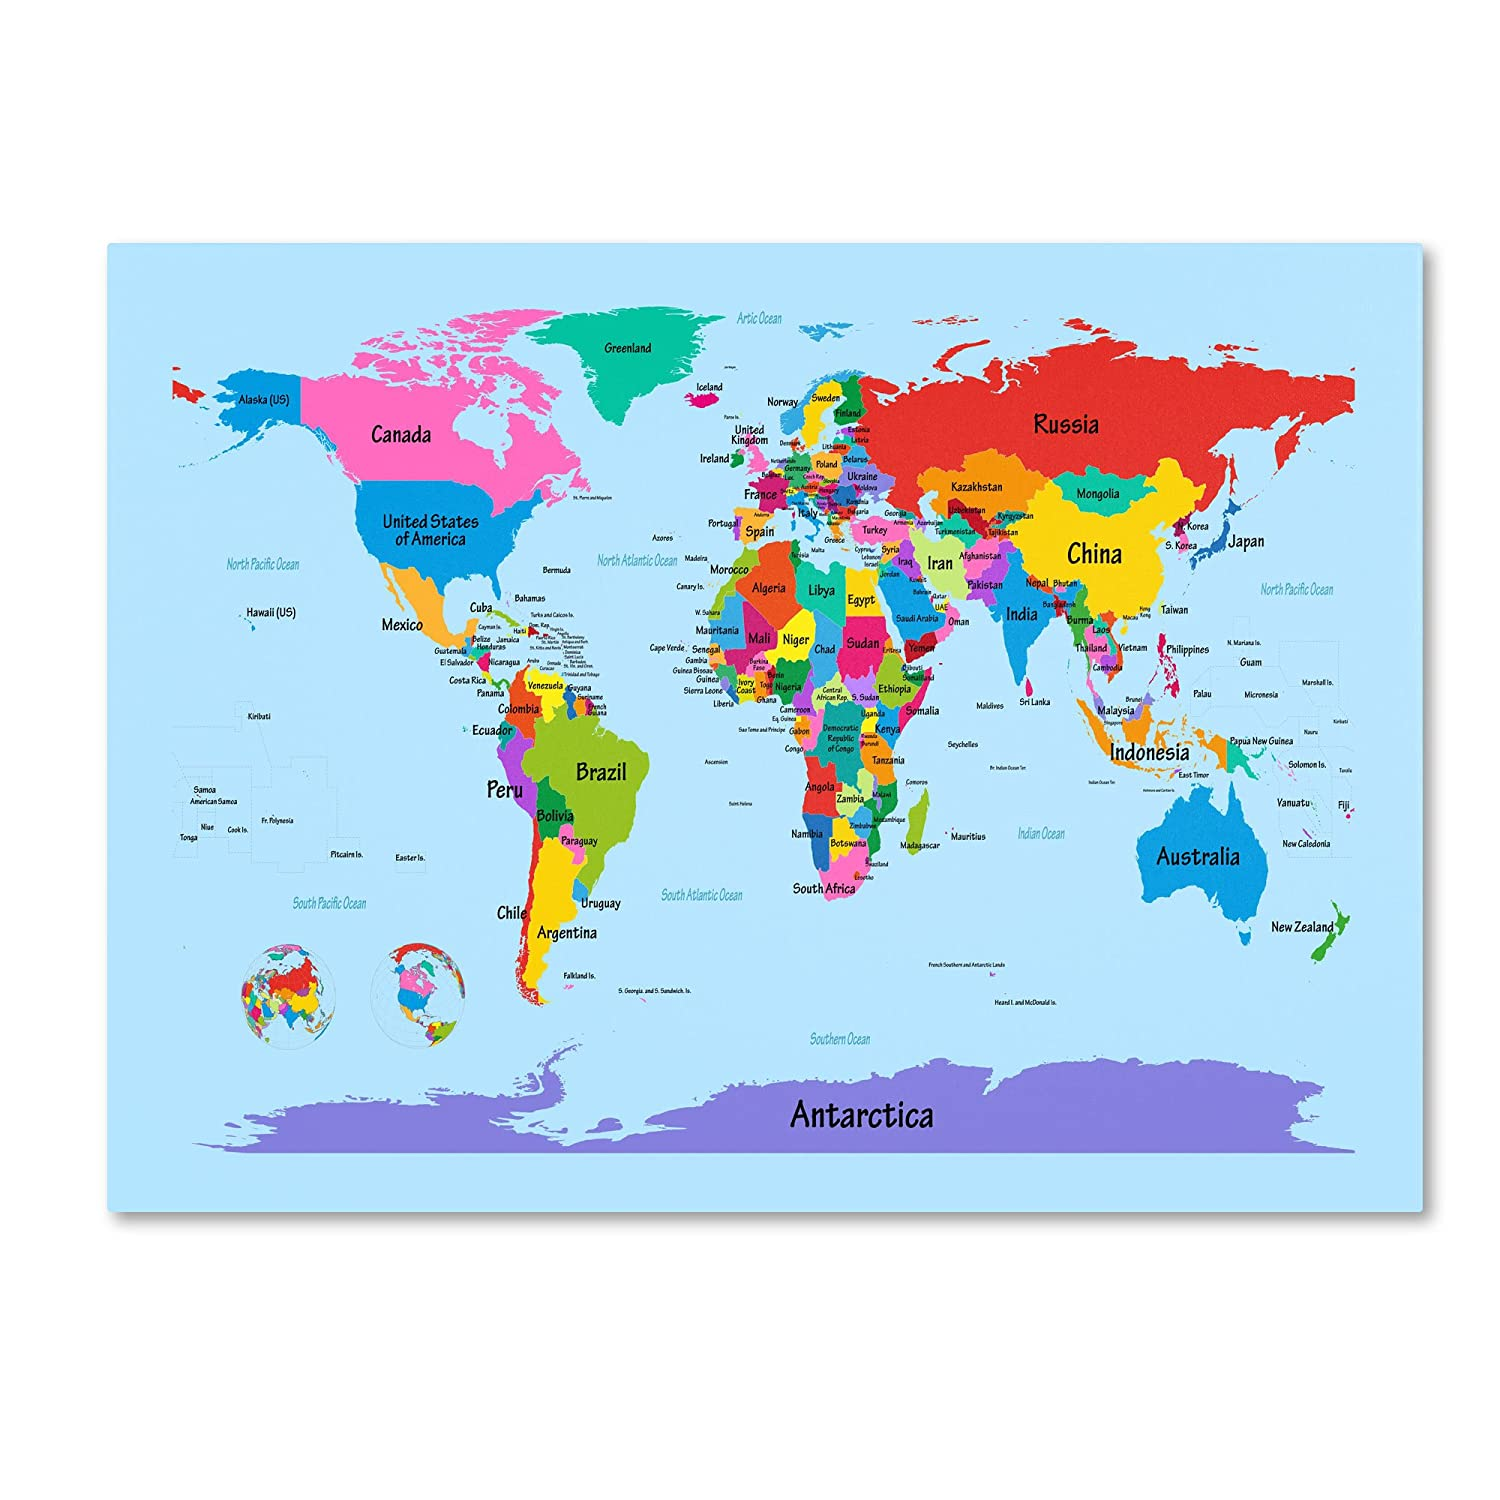 Amazoncom Childrens World Map By Michael Tompsett Work By - World map labeled